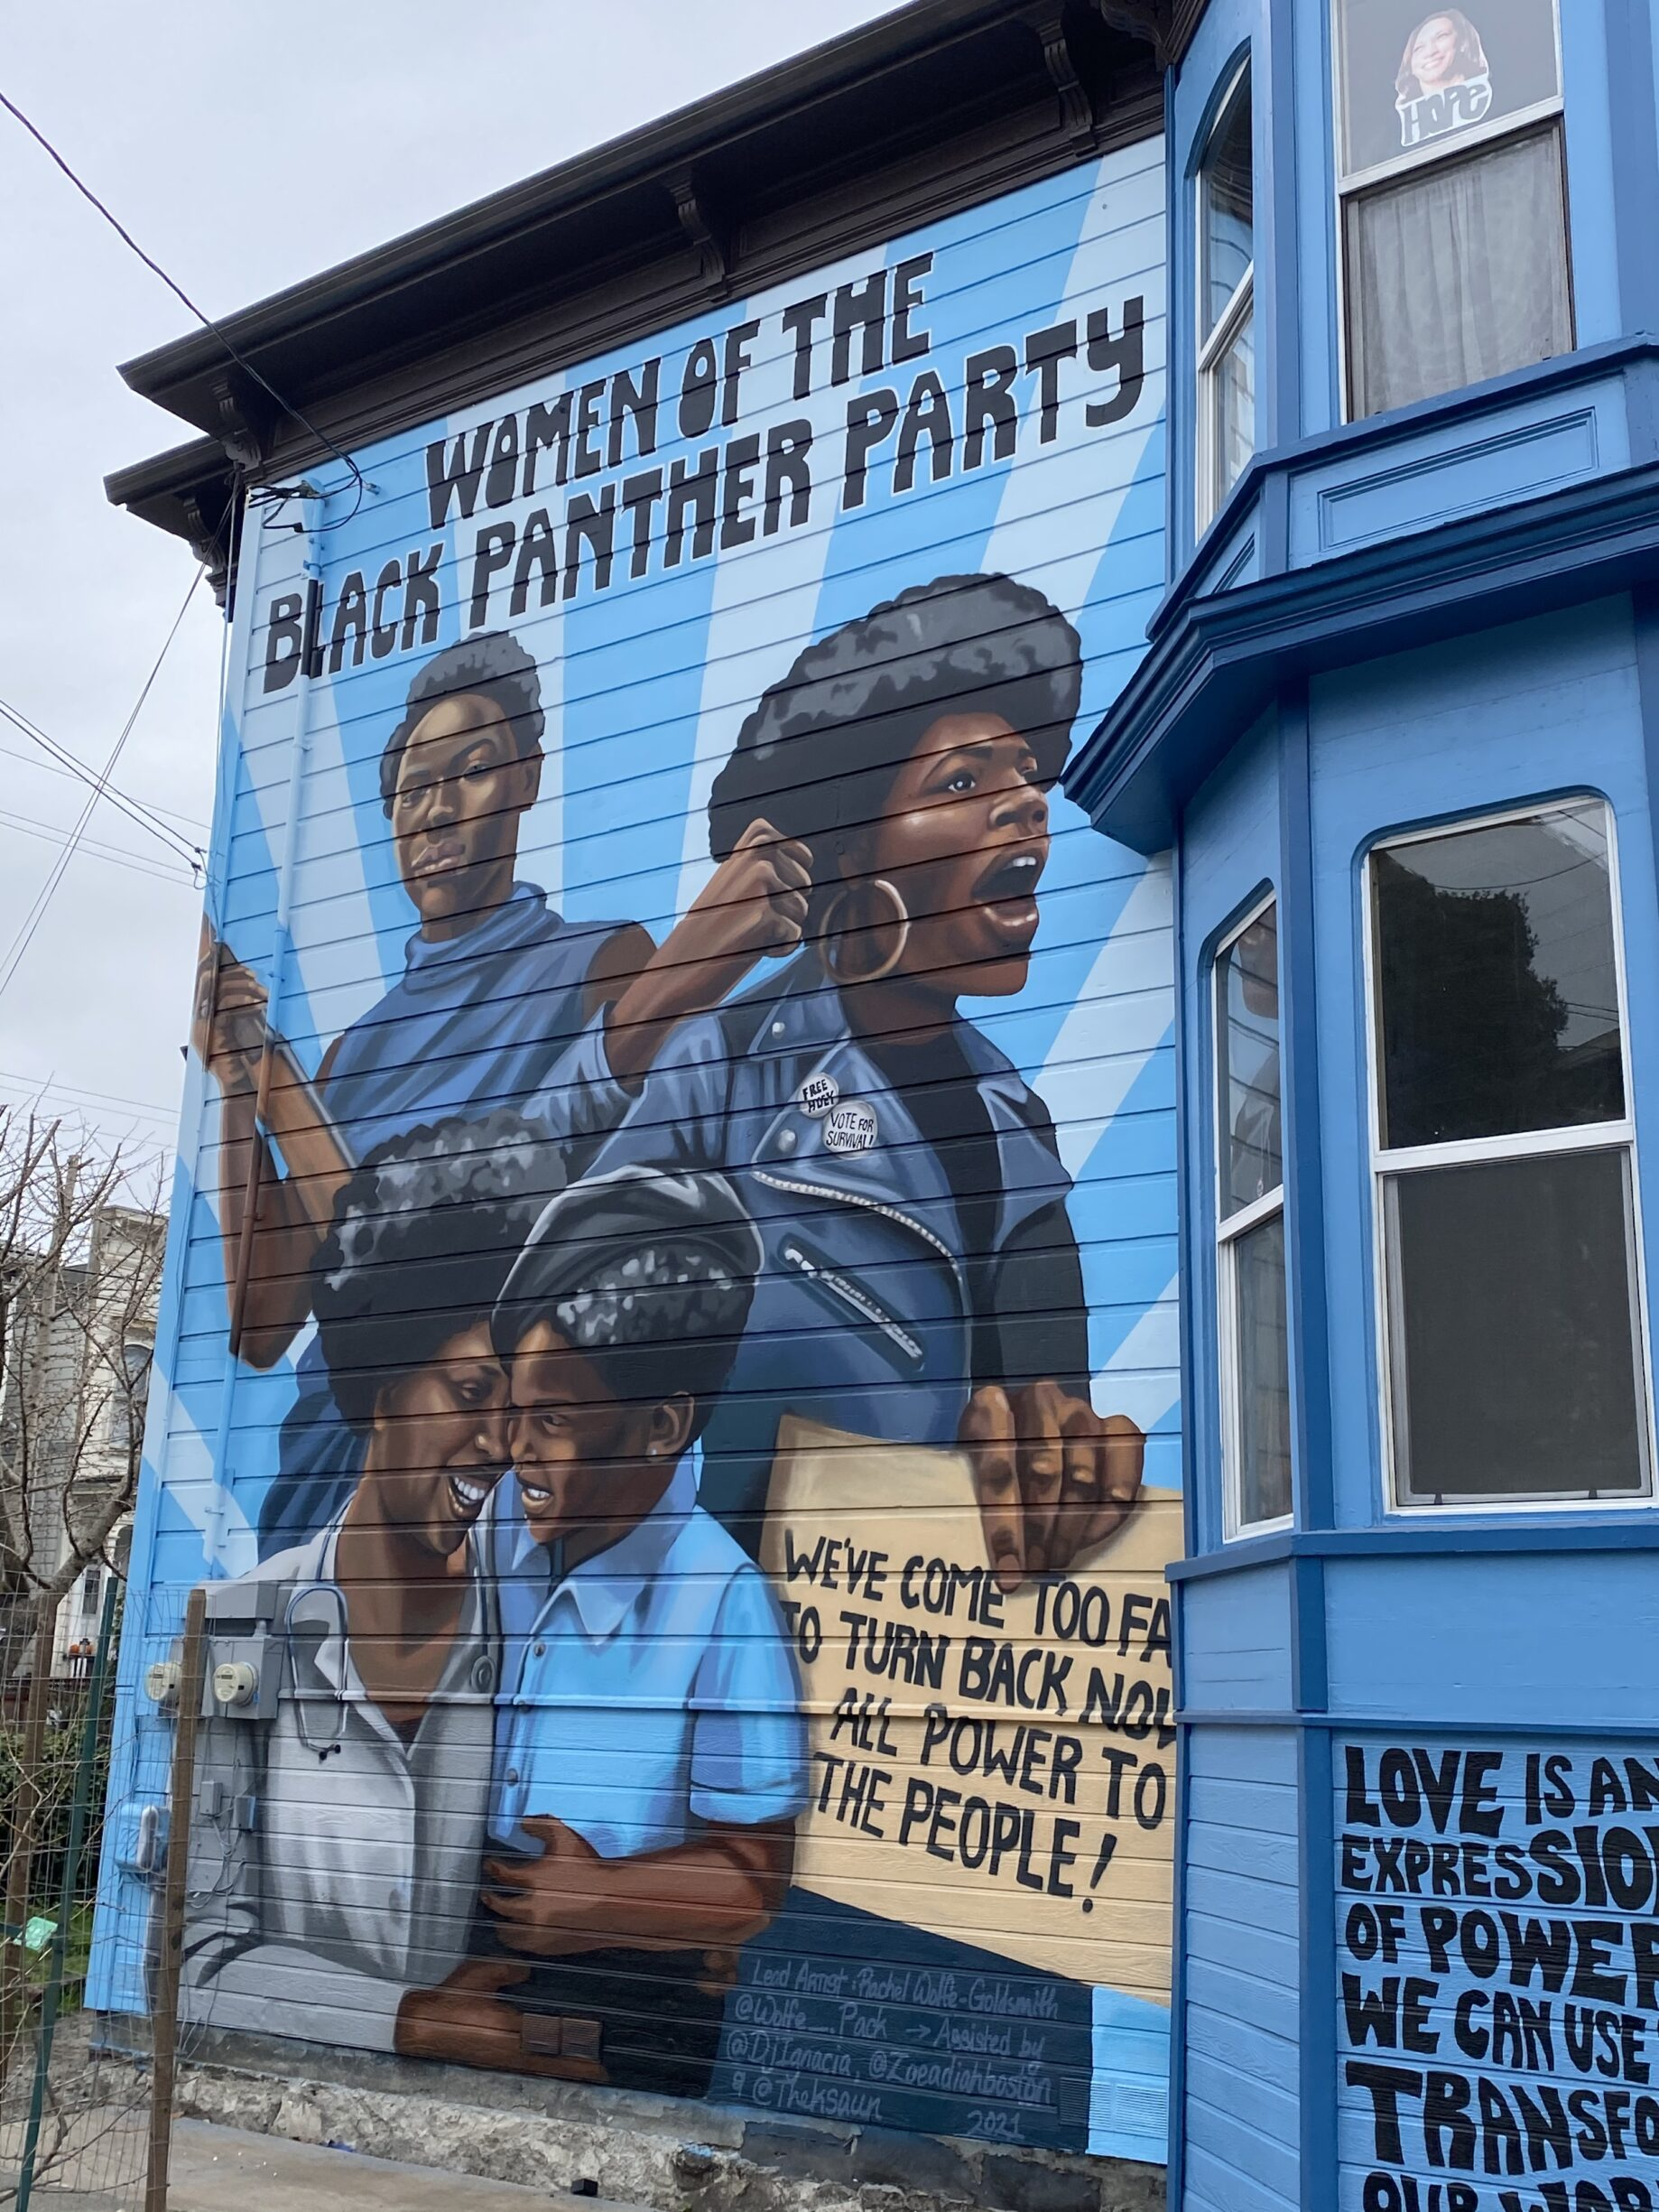 Women of the Black Panther Party. West Oakland Mural Project, 2021. Painting by Rachel Wolfe-Goldsmith. Photo: Taken on March 9, 2021 by rocor. (CC BY-NC 2.0).